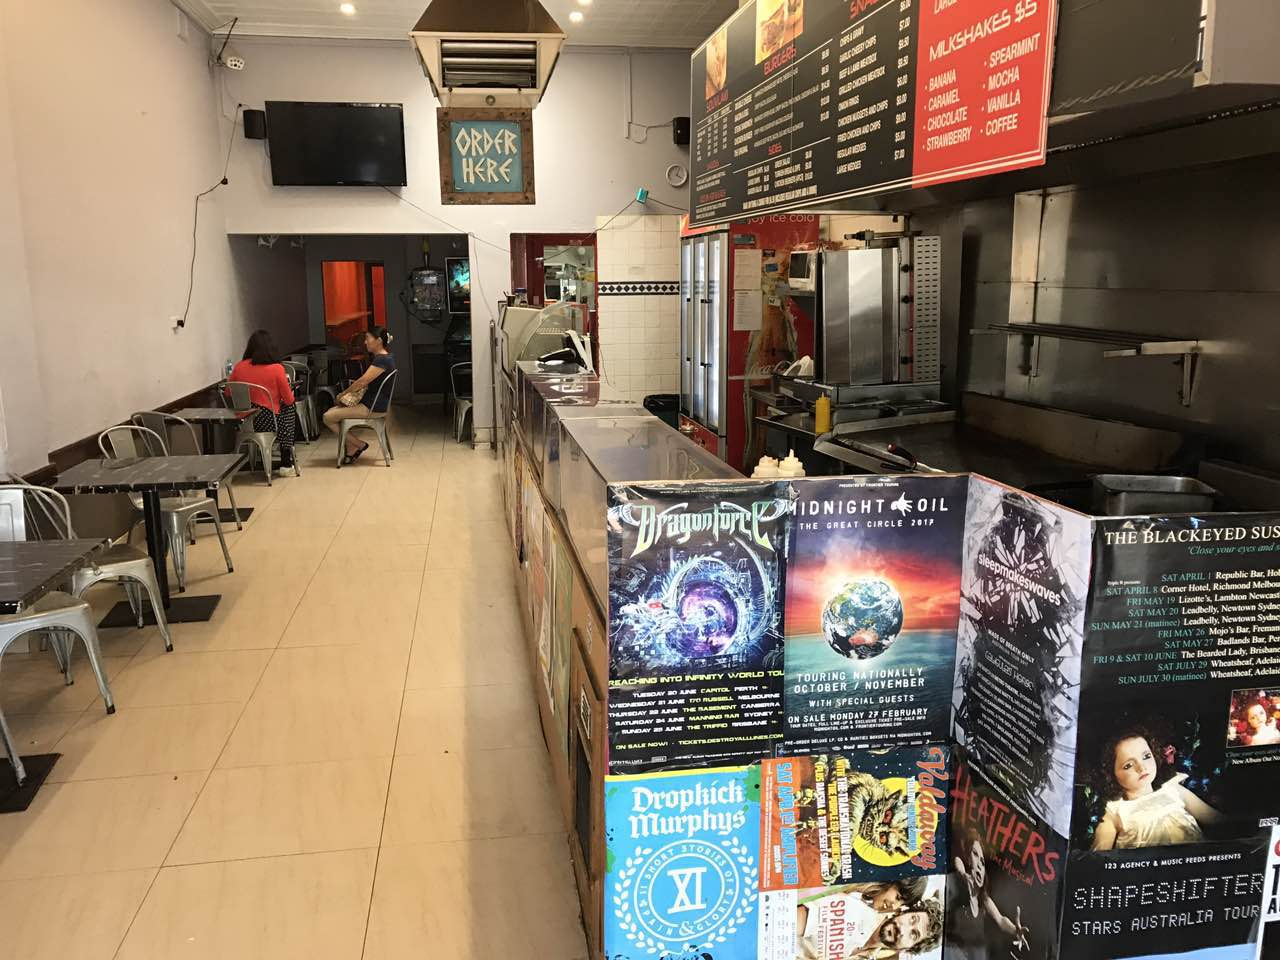 Kebab shop, Income to owner above $100,000 per year